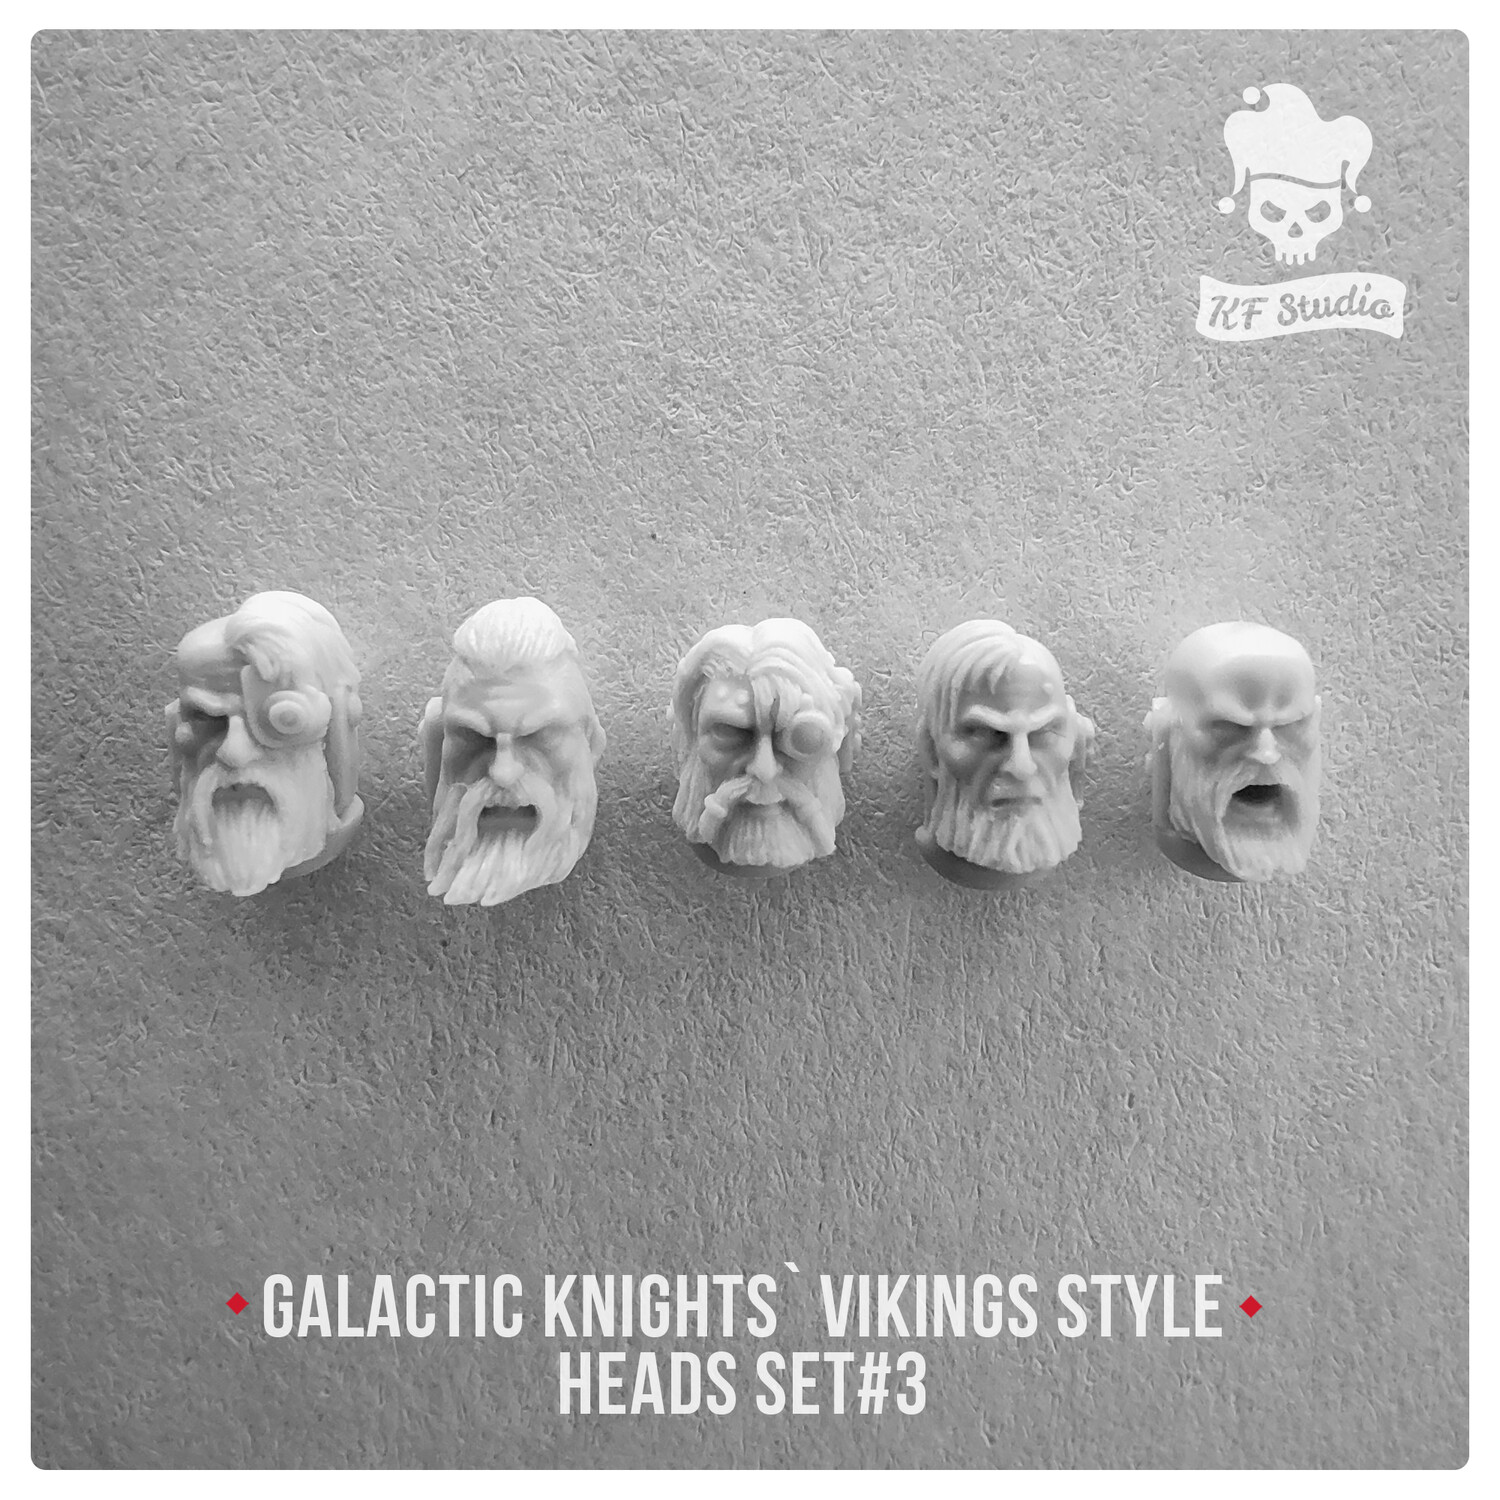 Galactic Knights Viking Style Heads Set#3 by KFStudio